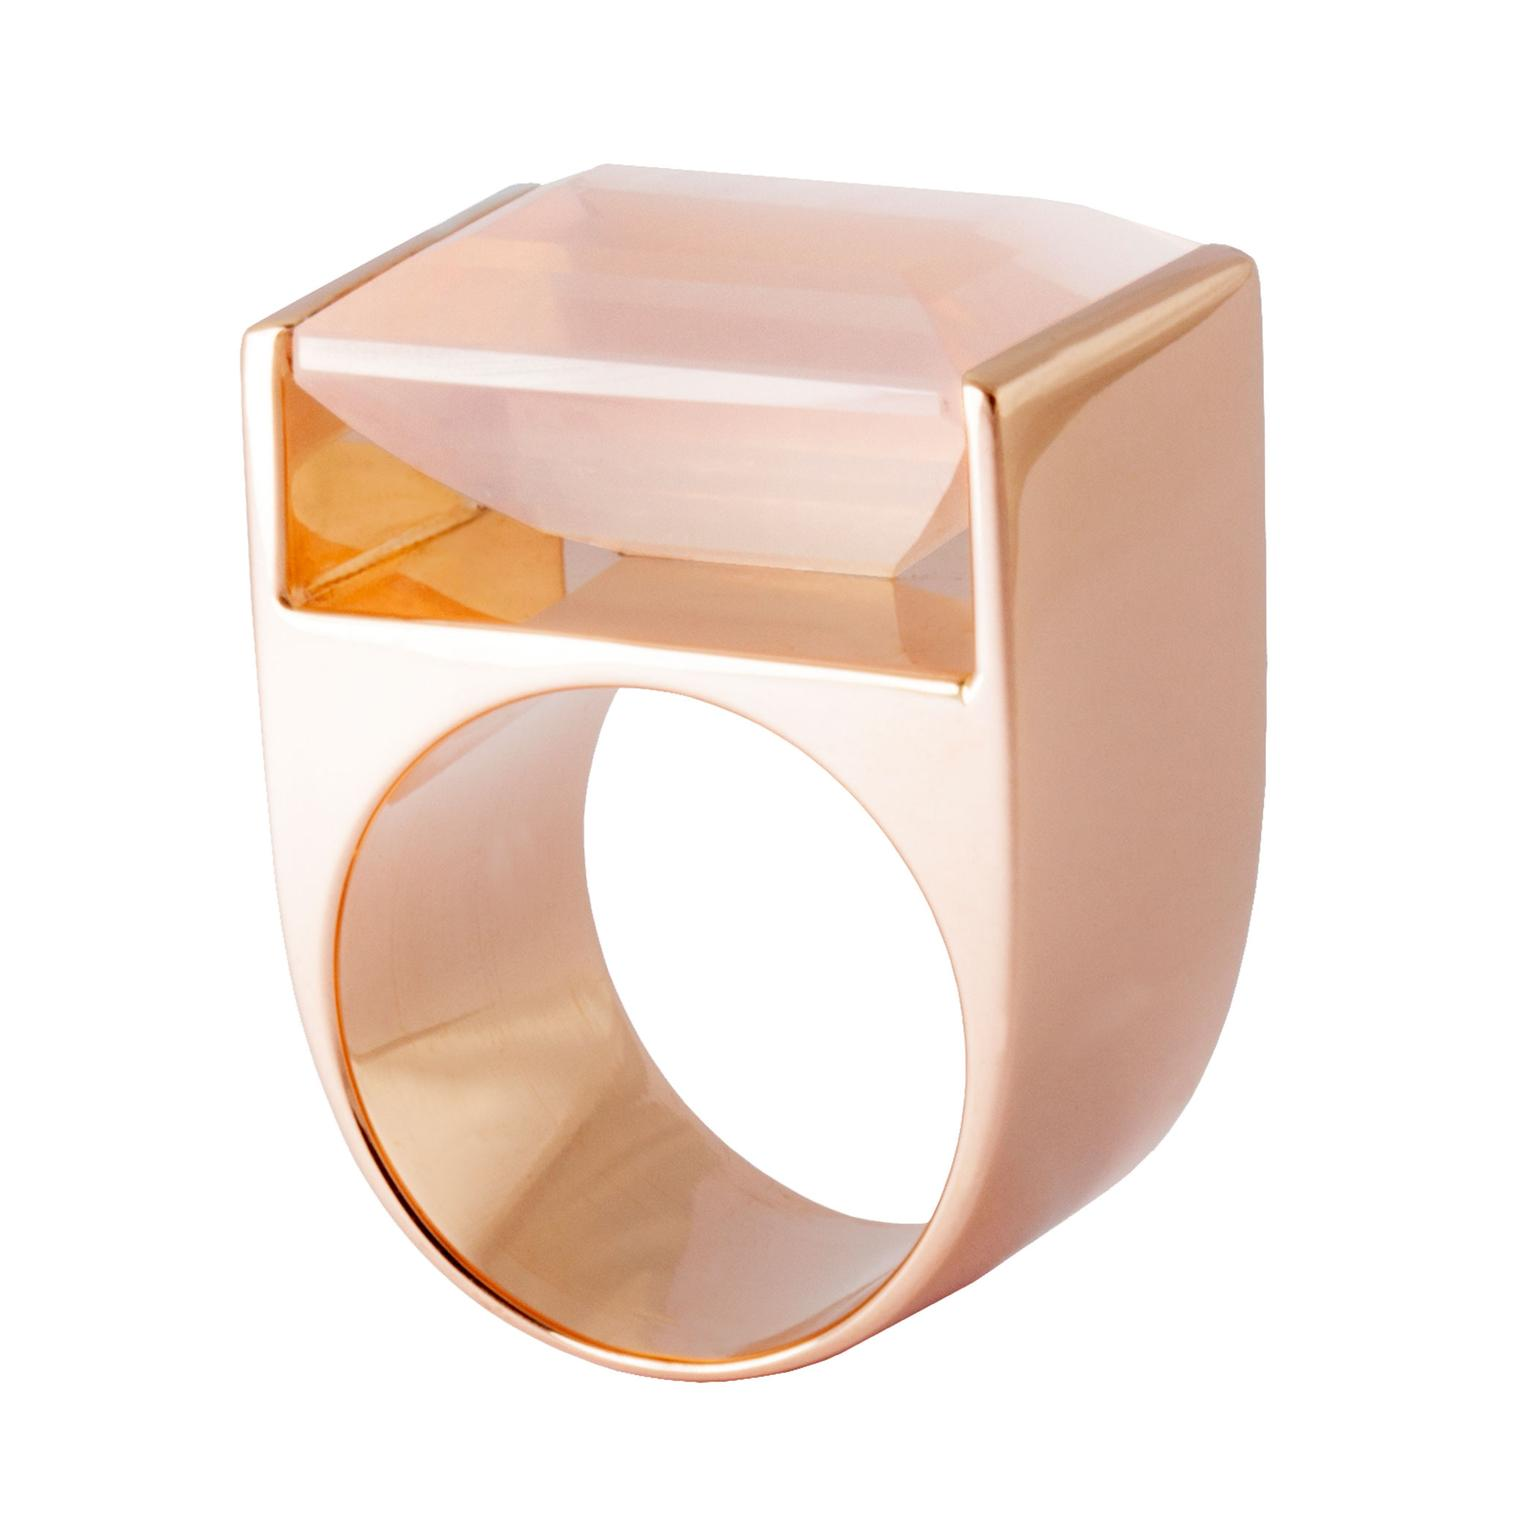 Kattri Quadrant Tall rose gold and rose quartz ring_zoom